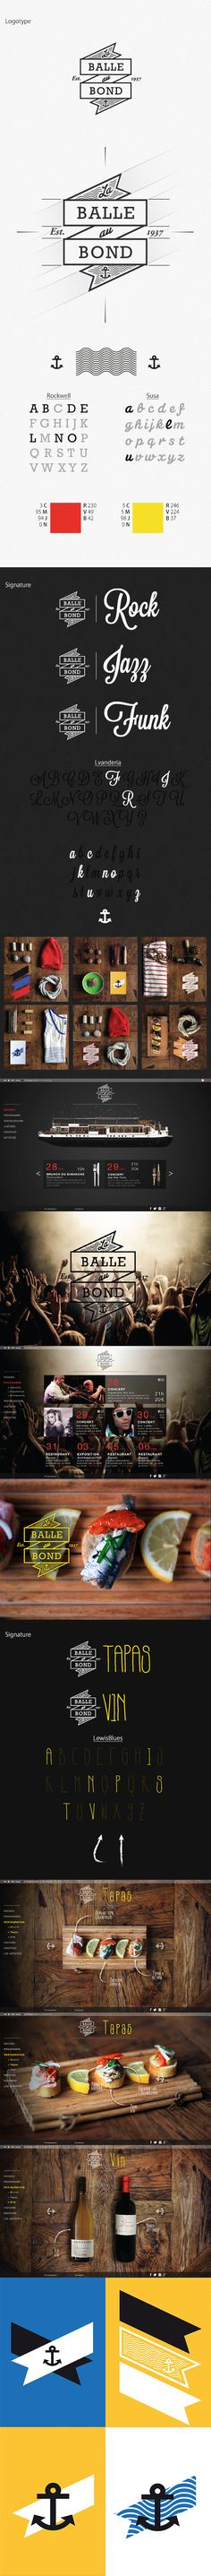 Balle au Bond by Thomas Roger-Veyer, via Behance